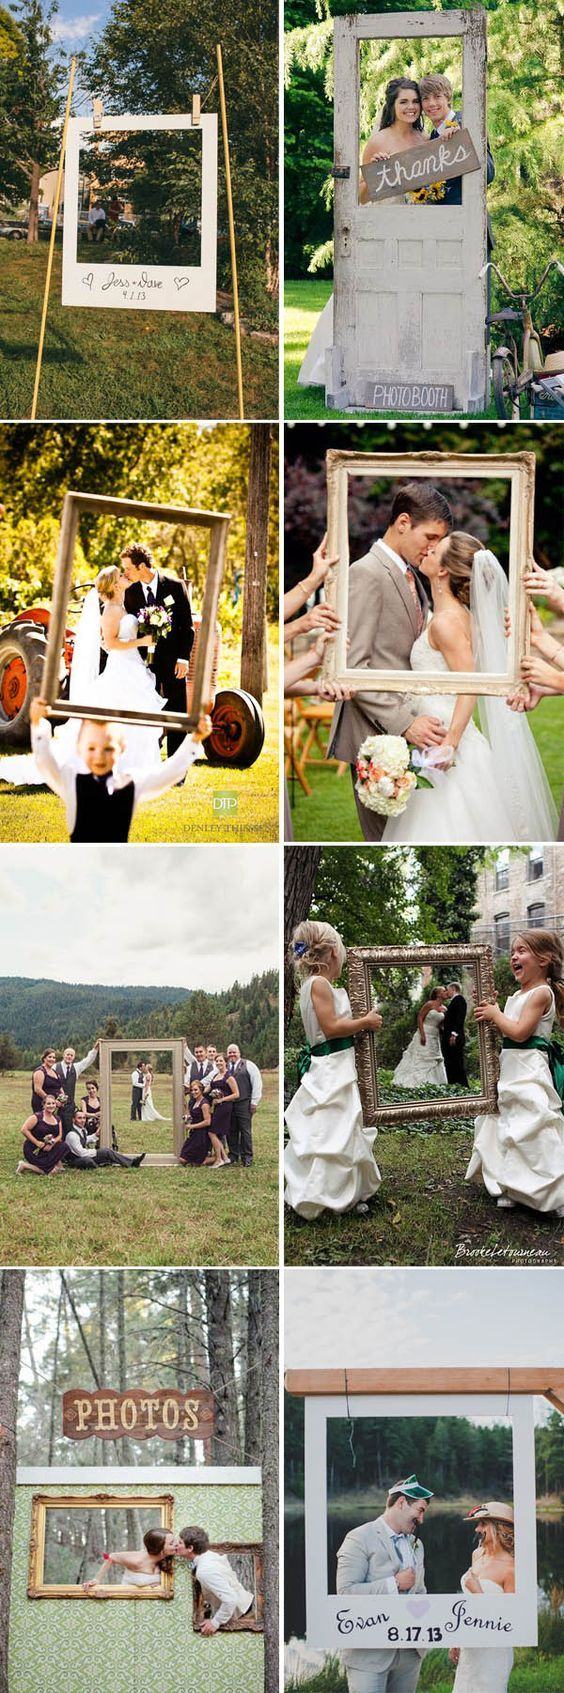 25 awesome wedding ideas with frames awesome wedding ideas photo 25 awesome wedding ideas with frames ecs love invites solutioingenieria Images